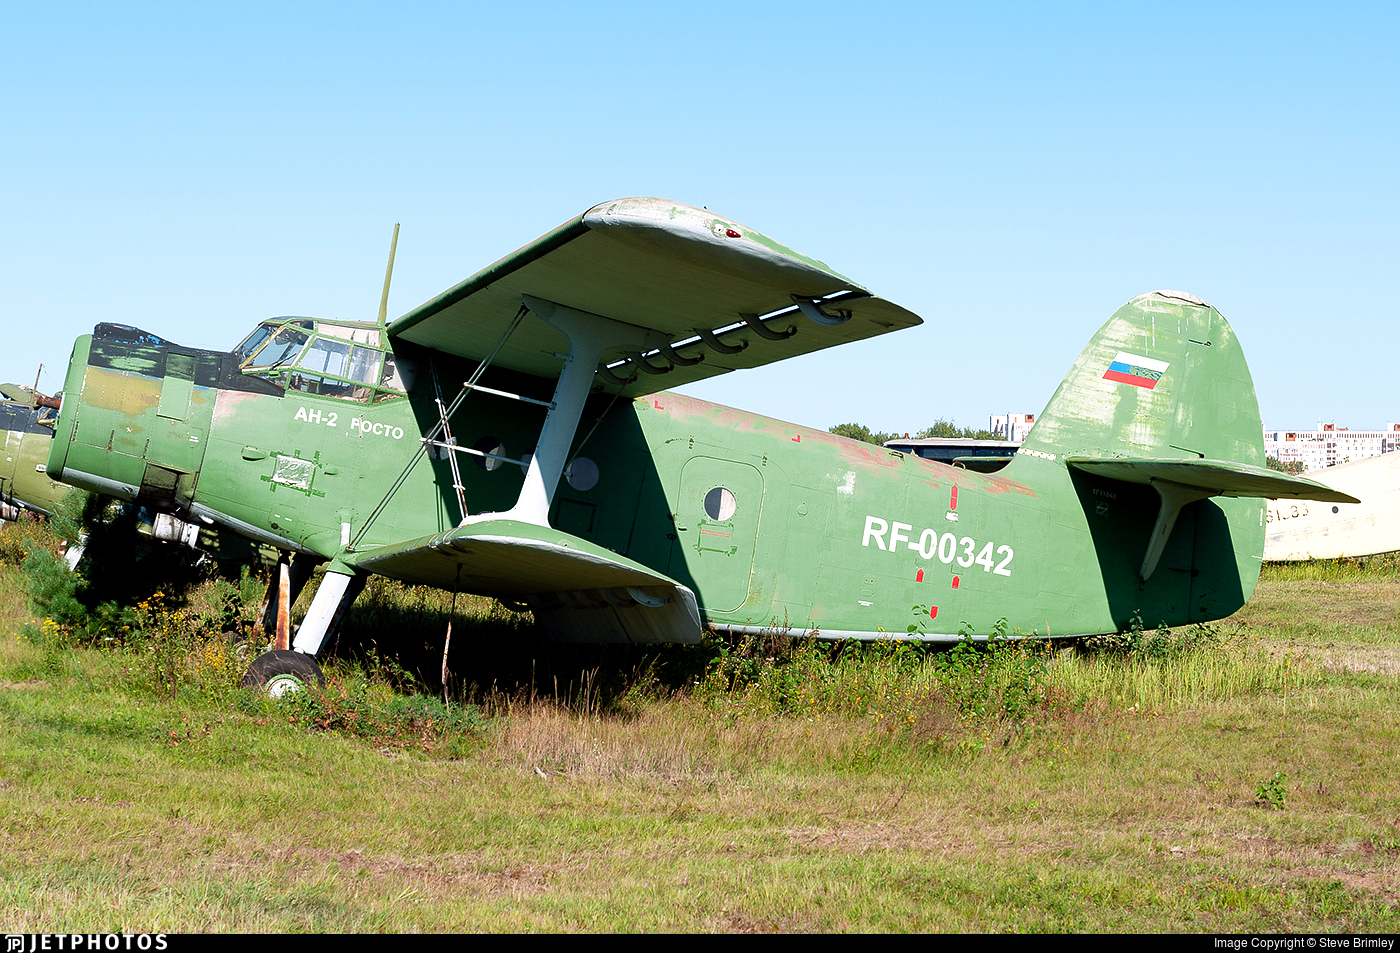 RF-00342 - PZL-Mielec An-2T - Russia - Voluntary Society for Assistance to the Army, Air Force and Navy (DOSAAF)